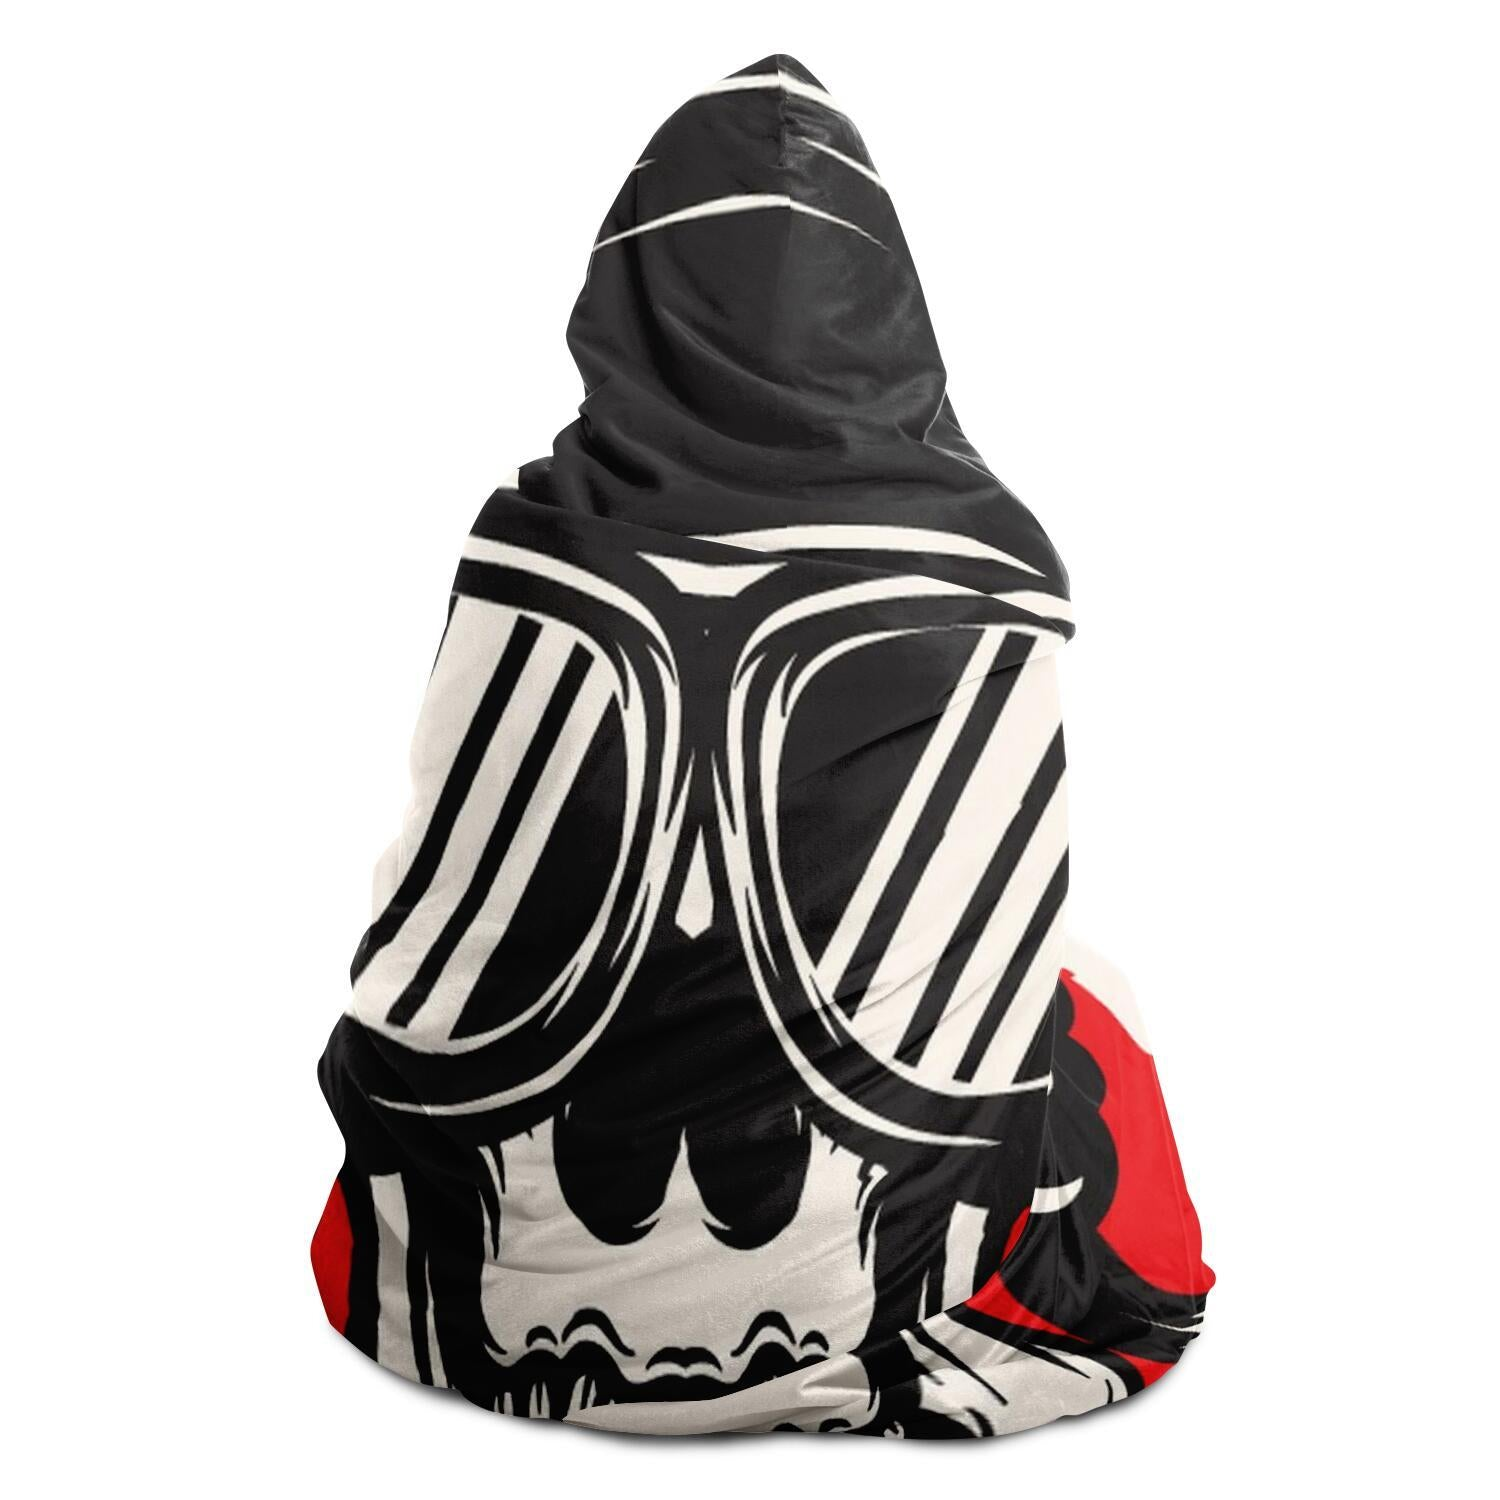 Kamikaze Hooded Blanket